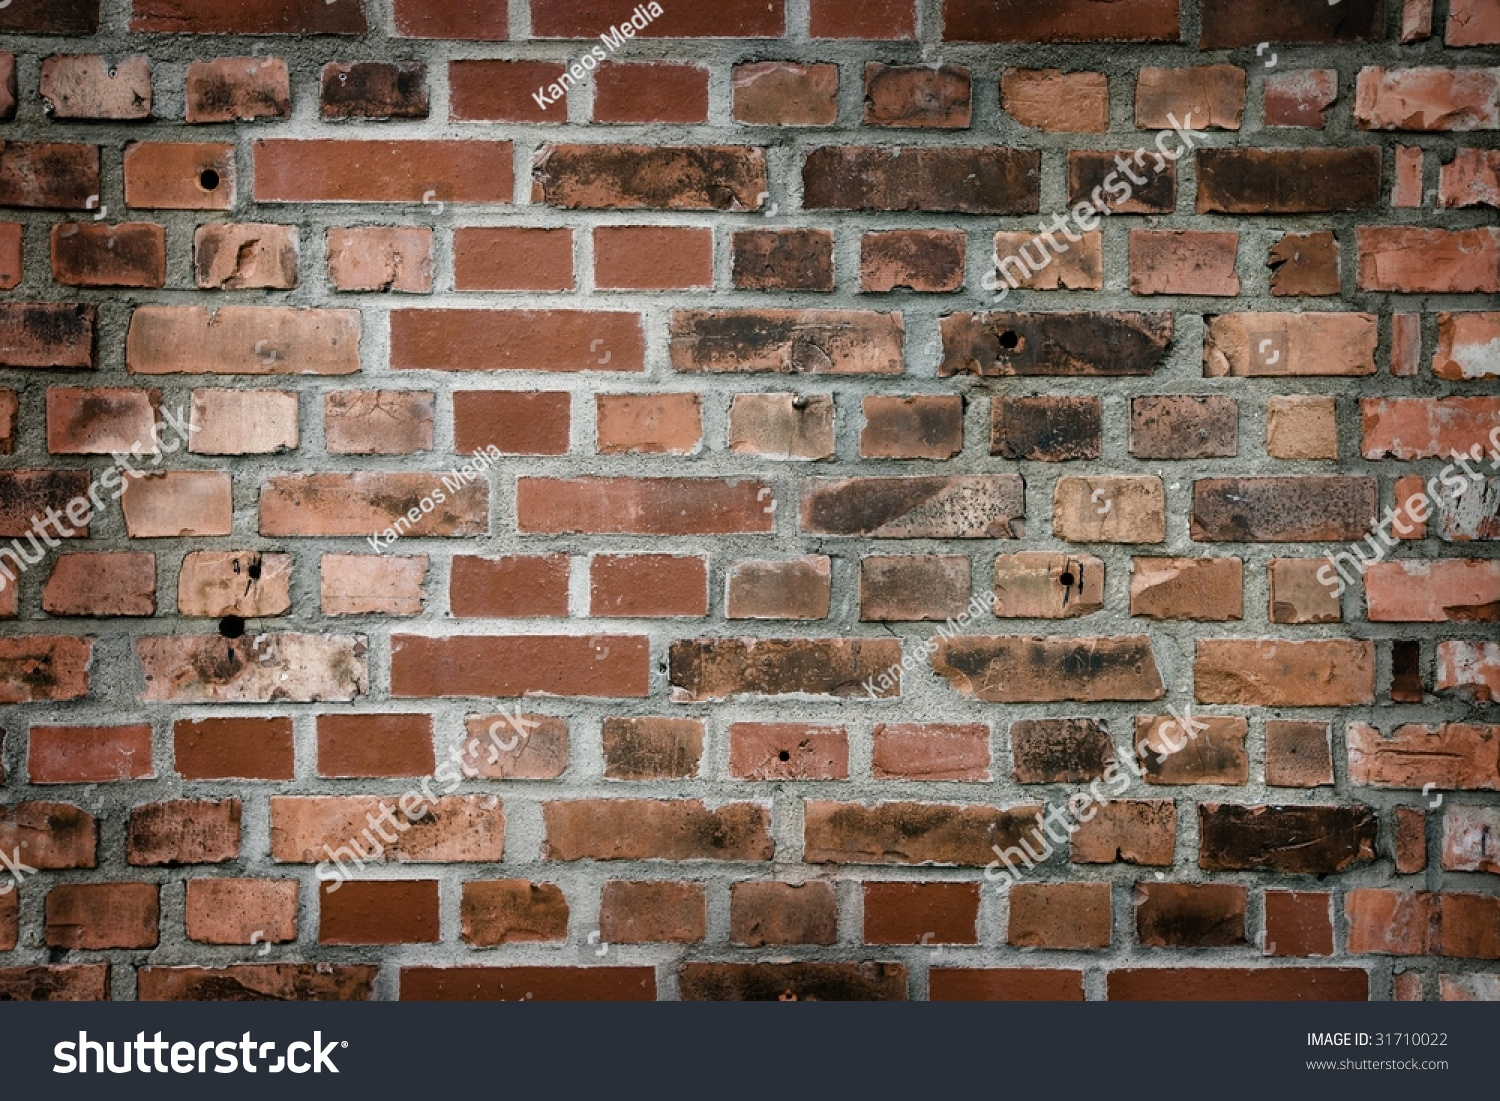 Bullet holes in brick wall